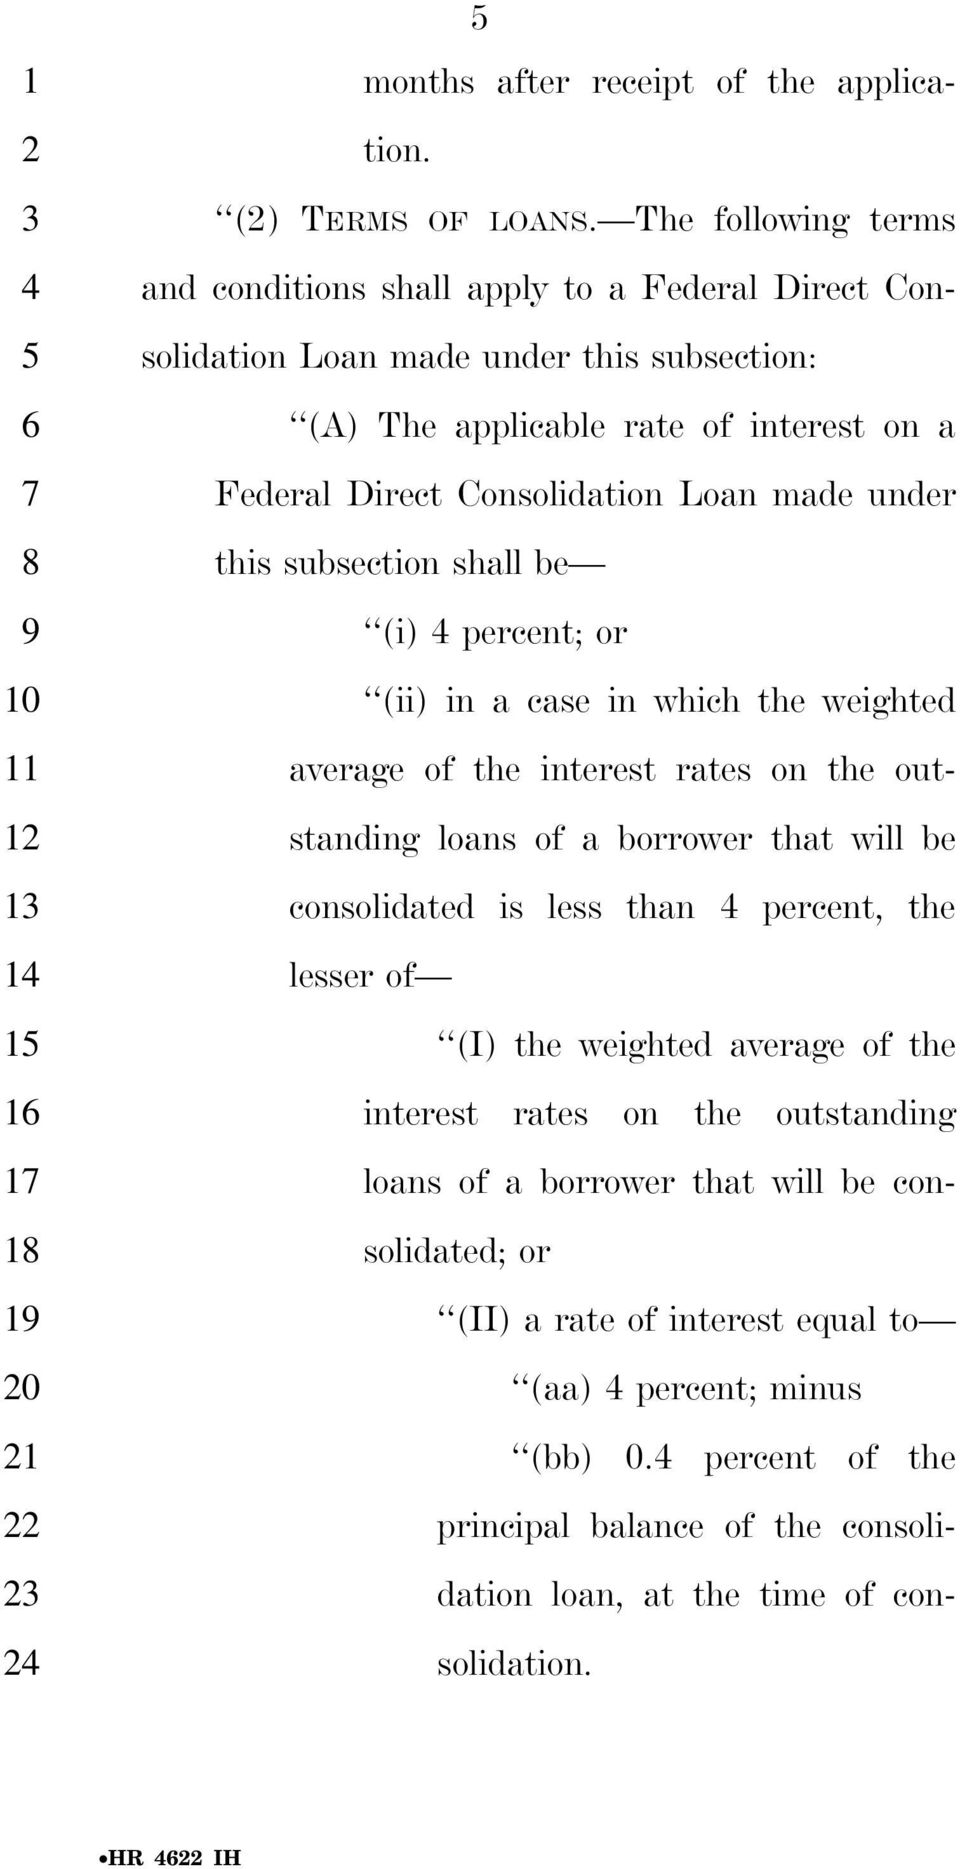 under this subsection shall be (i) percent; or (ii) in a case in which the weighted average of the interest rates on the out- standing loans of a borrower that will be consolidated is less than